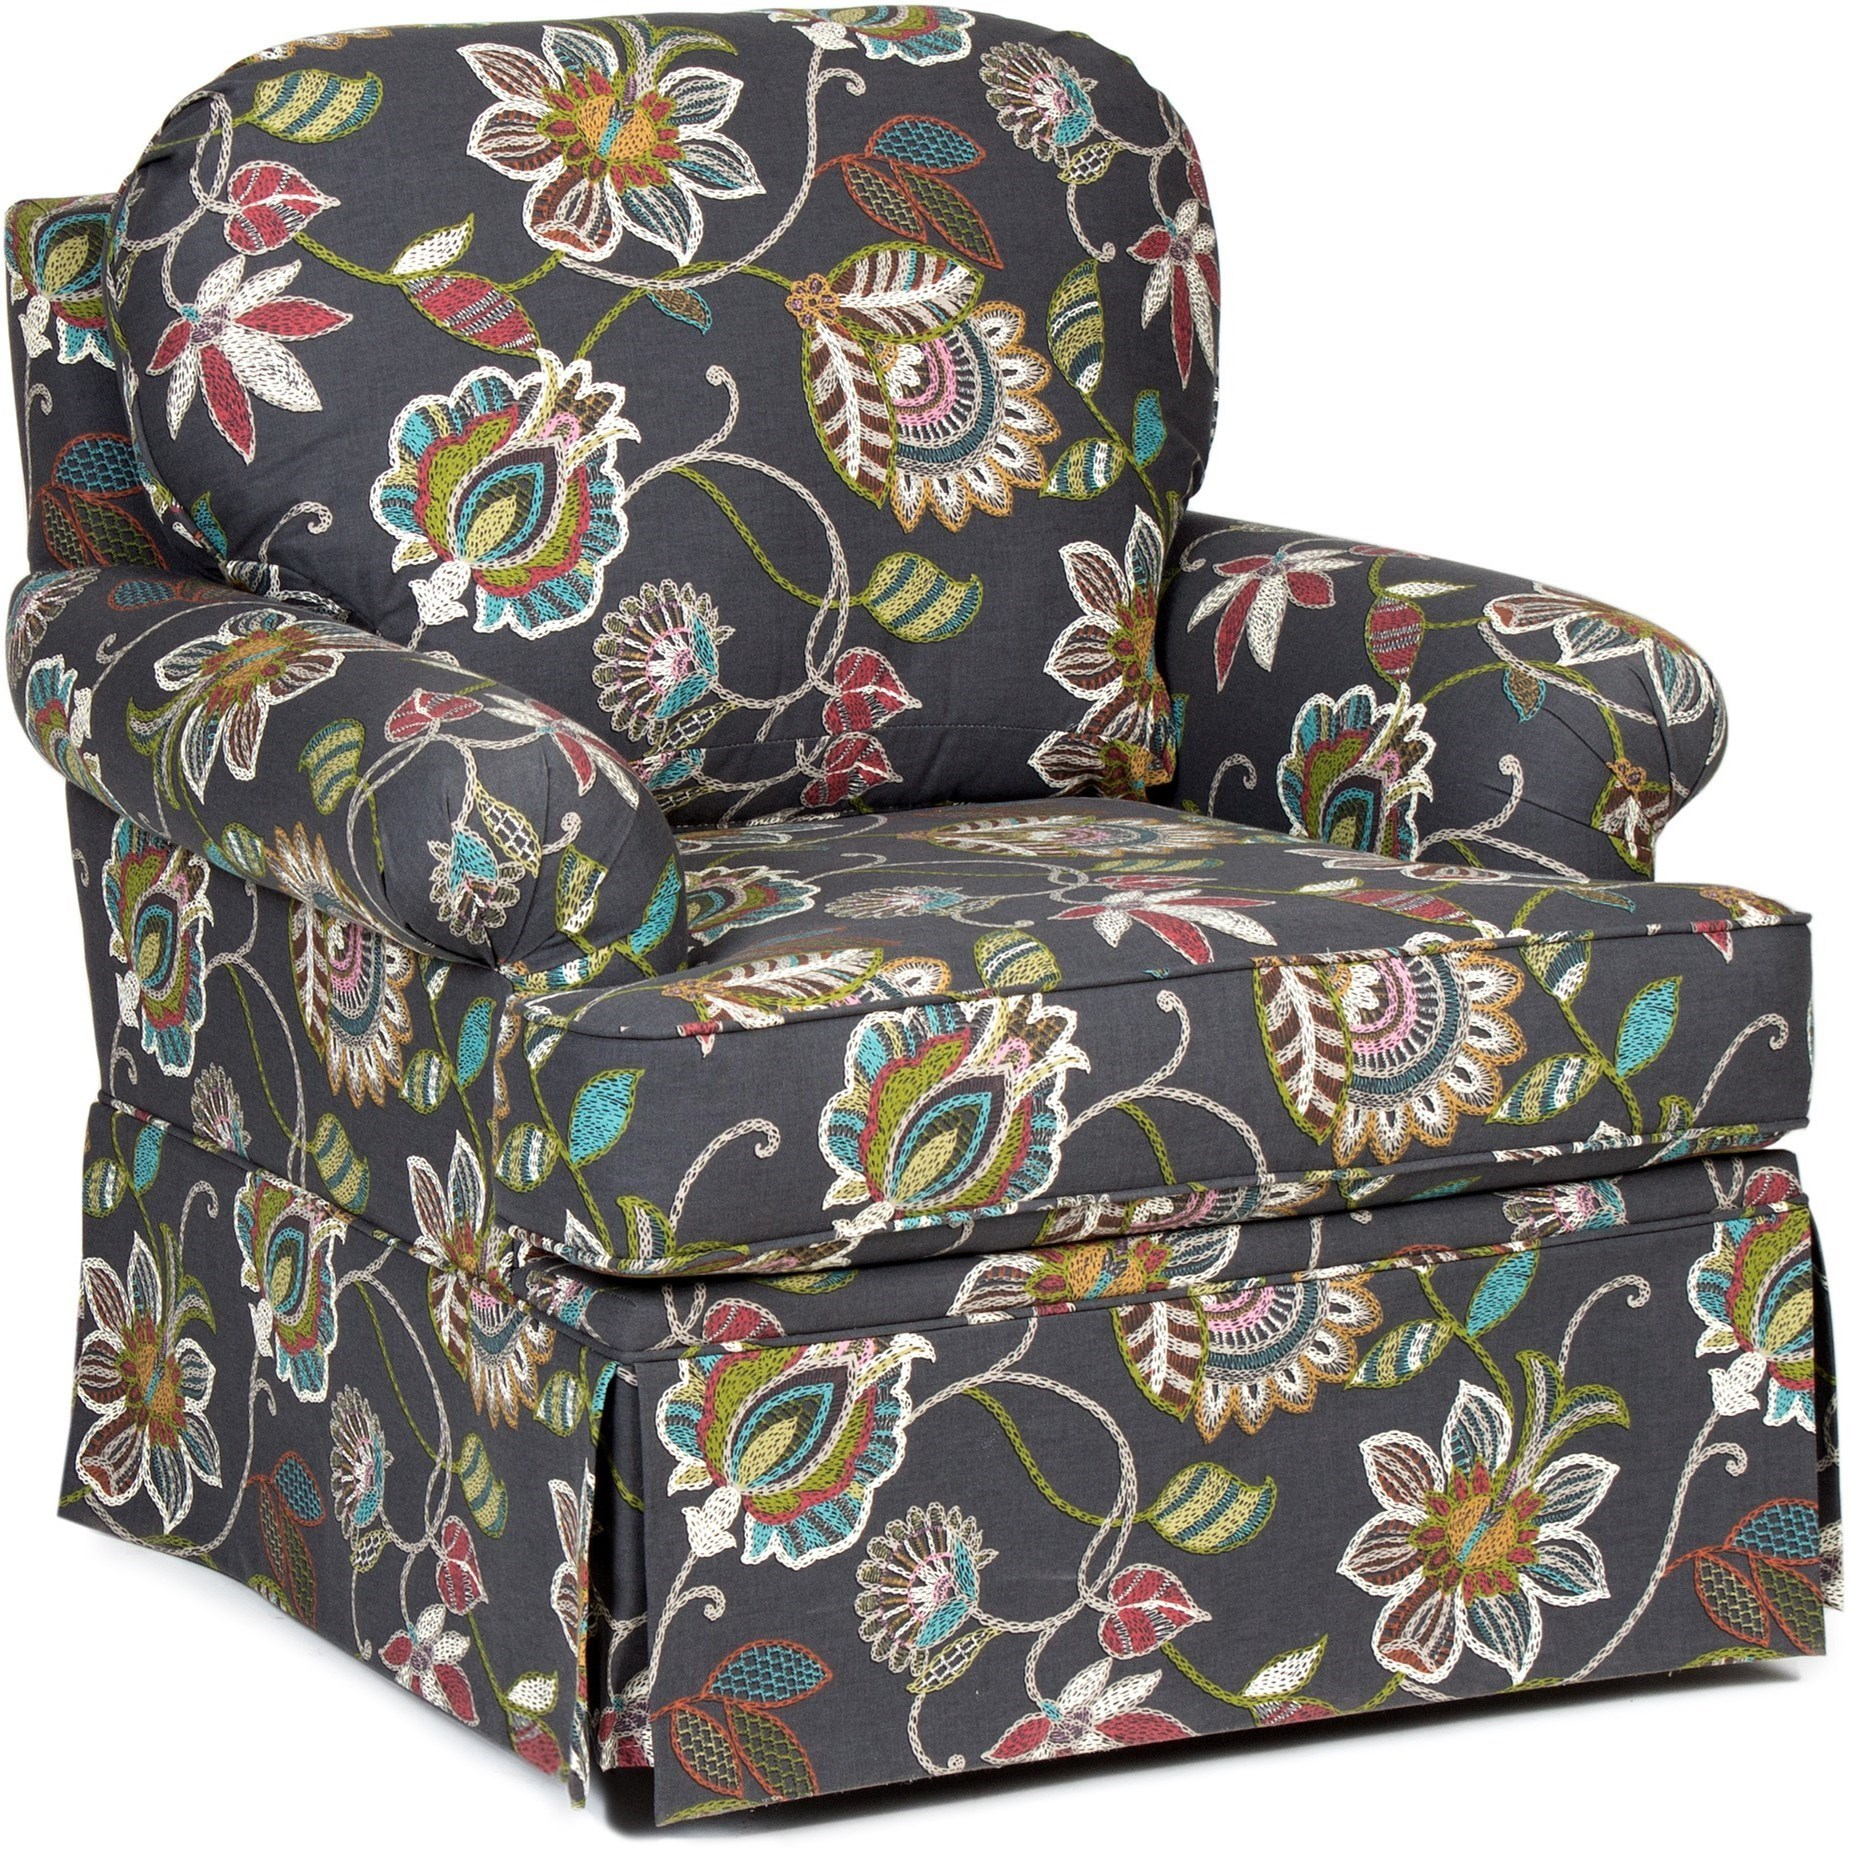 Gentil Chairs America Accent Chairs And OttomansSwivel Glider